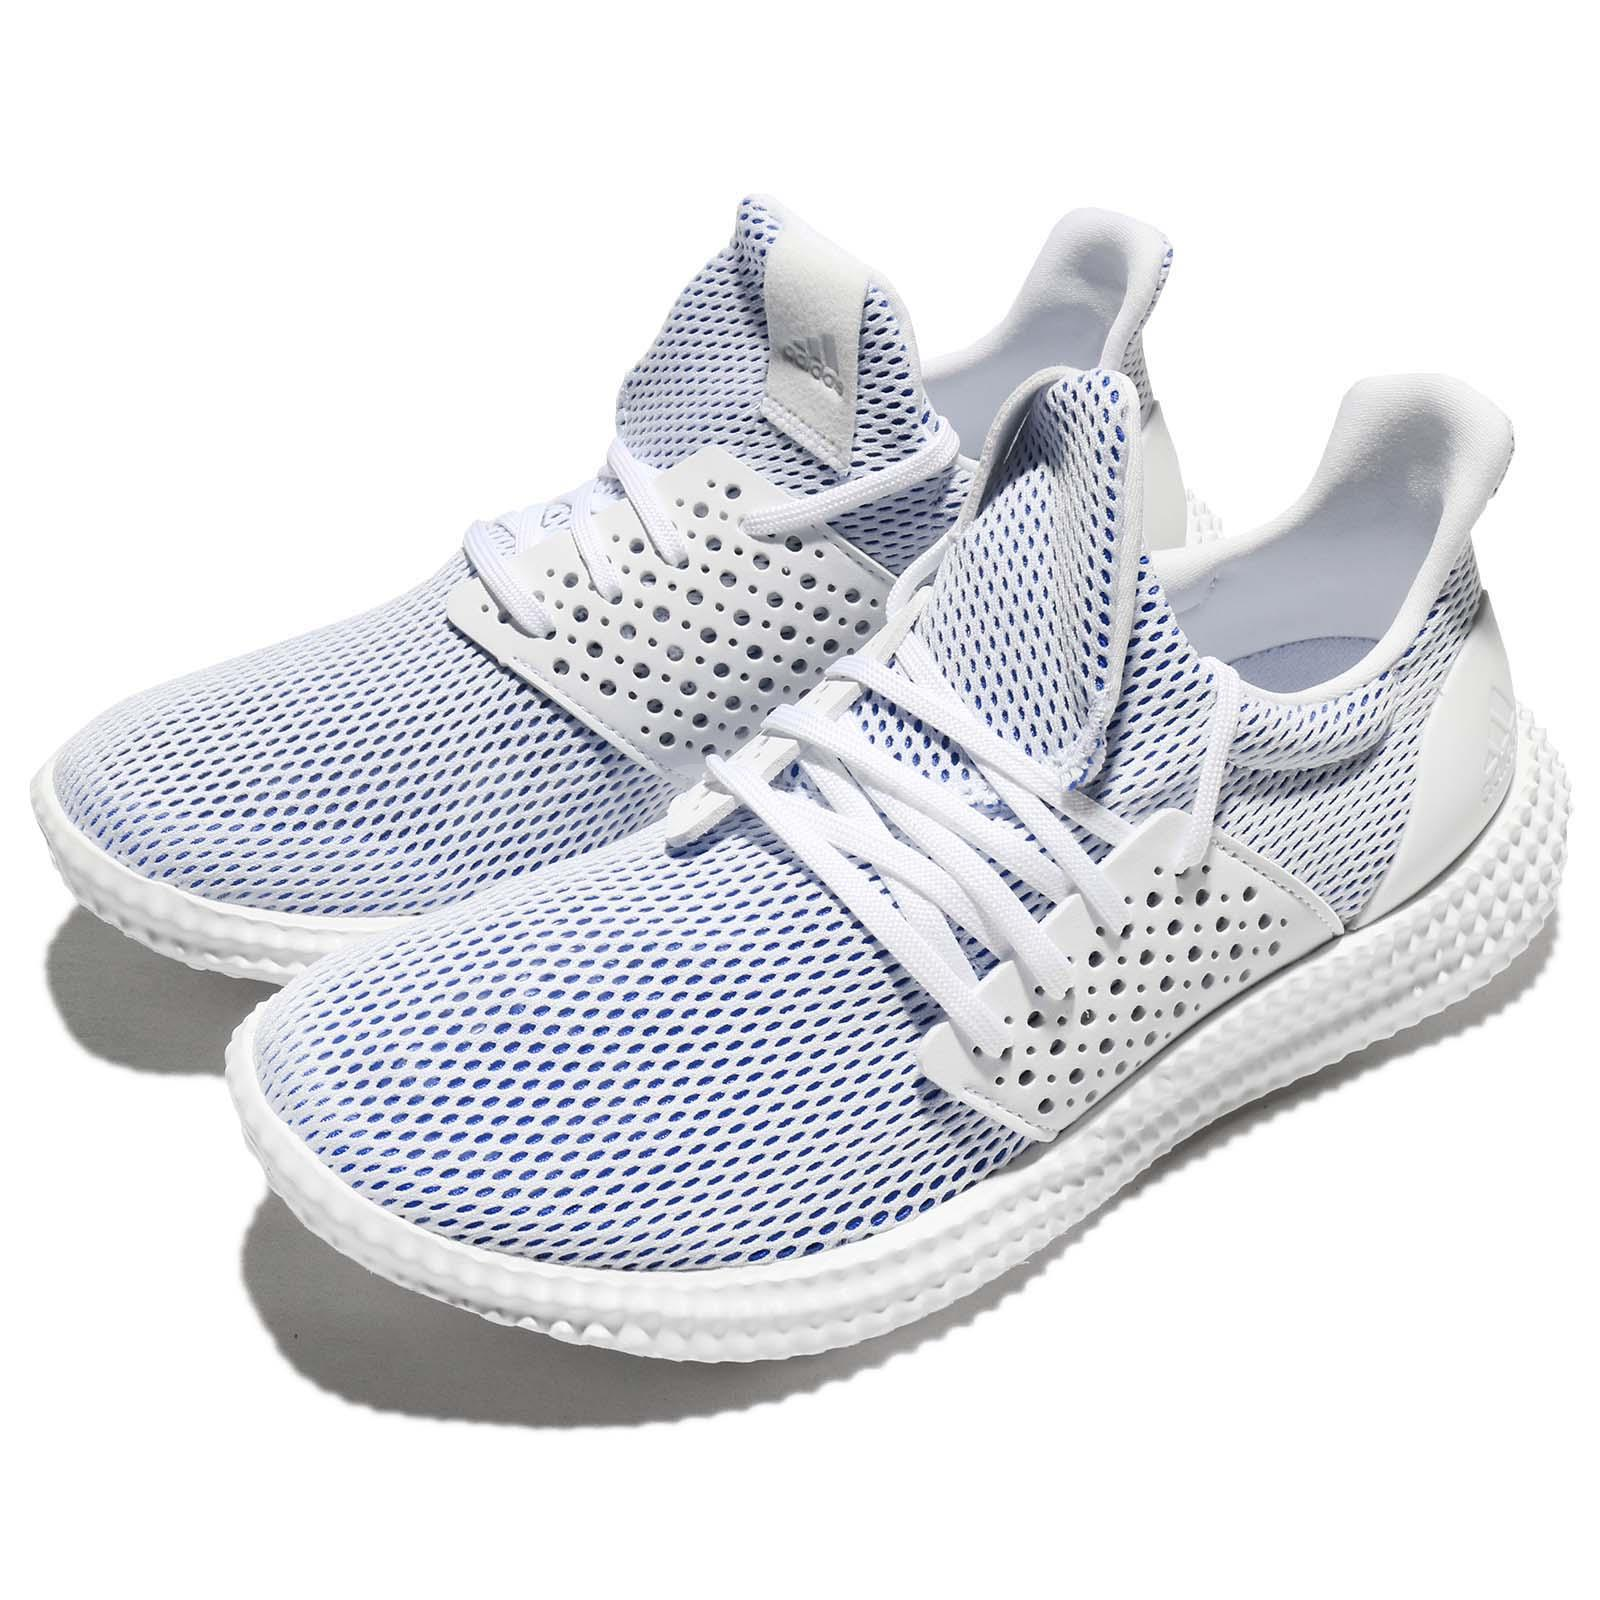 Details about adidas Athletics 24 7 W White Blue Women Cross Training Shoes  Sneakers CP9870 22fa6778c7